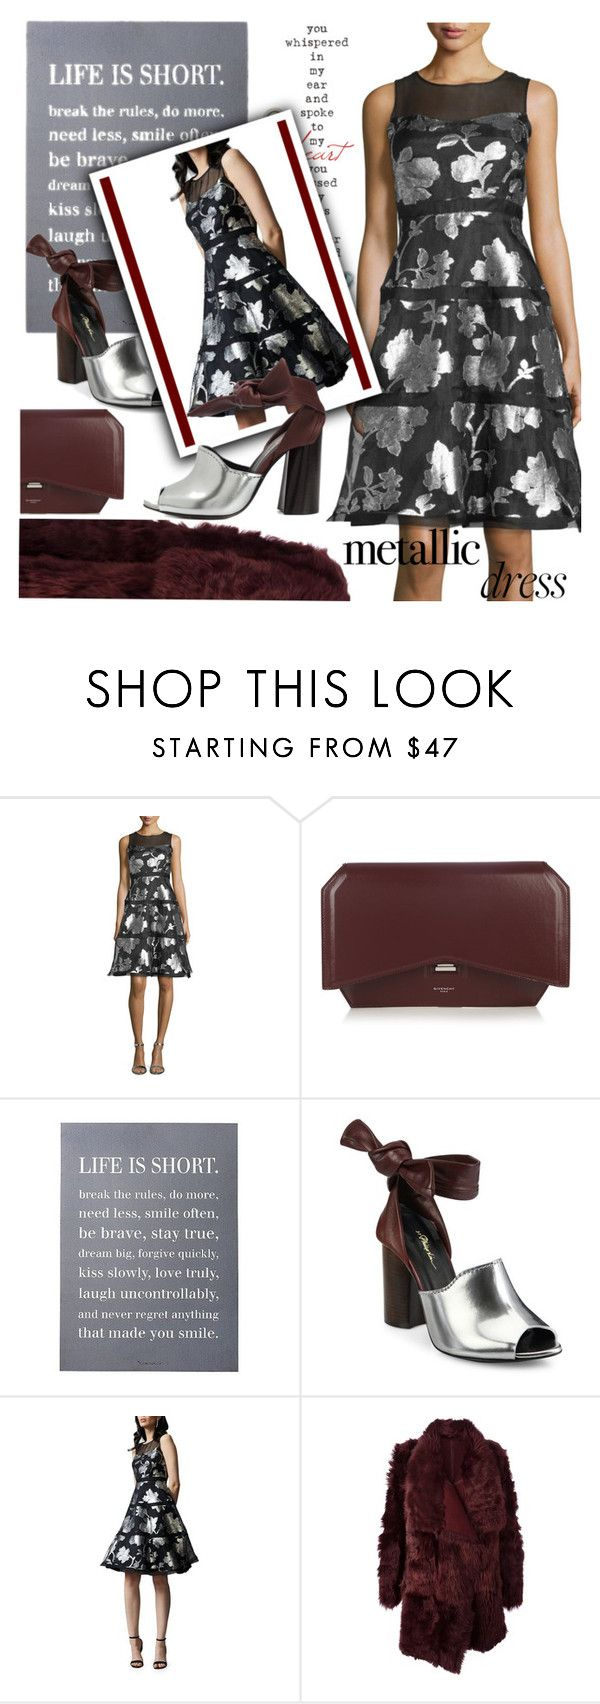 """""""Metallic Dress"""" by samketina ❤ liked on Polyvore featuring Kay Unger New York, Givenchy, 3R Studios, 3.1 Phillip Lim, Meteo by Yves Salomon and metallicdress"""